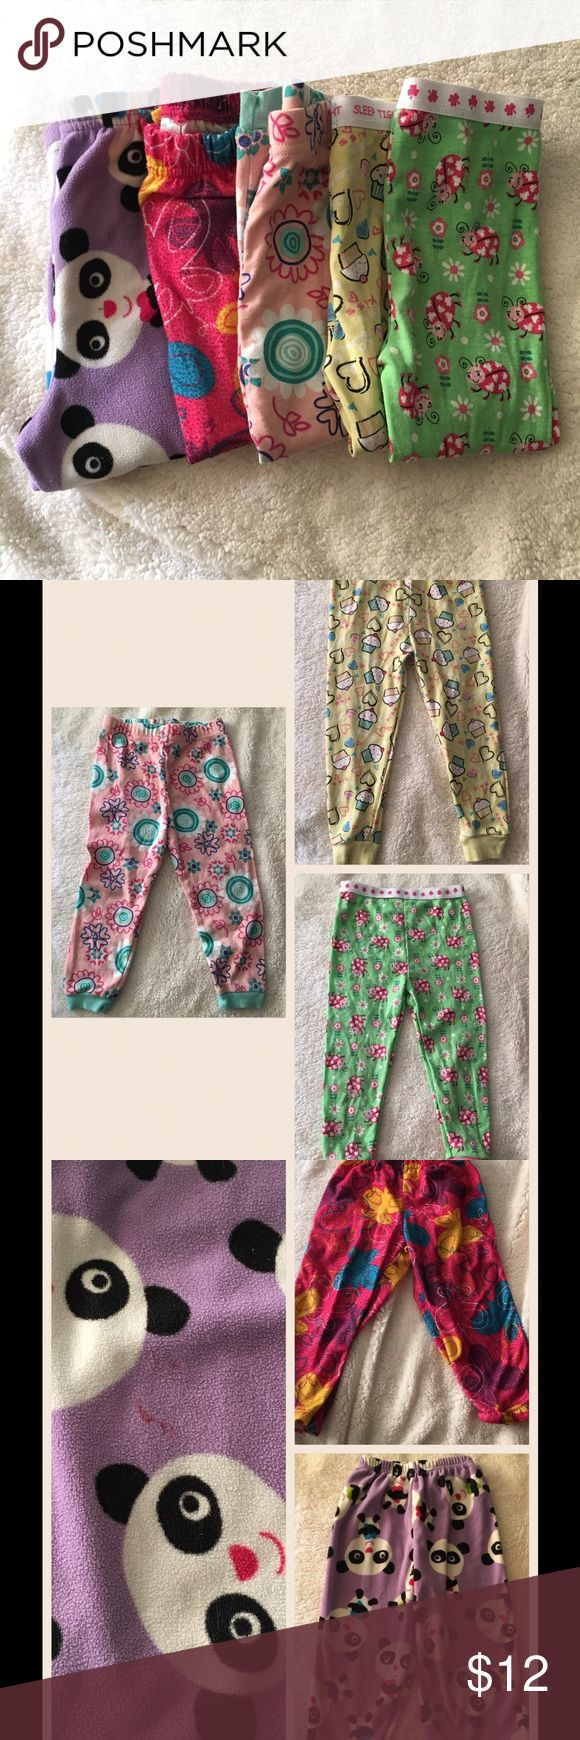 Lot of 5 pajama bottoms 24 months/2T Purple with pandas (Carters), pink with butterfly's(no brand name on), light pink with flowers (Kidgets), yellow with cupcakes (no brand name on tag),  and green with lady bugs (no brand name on tags). Selling all of these together! All used but in good condition. Size 24 months and 2T. Pajamas Pajama Bottoms